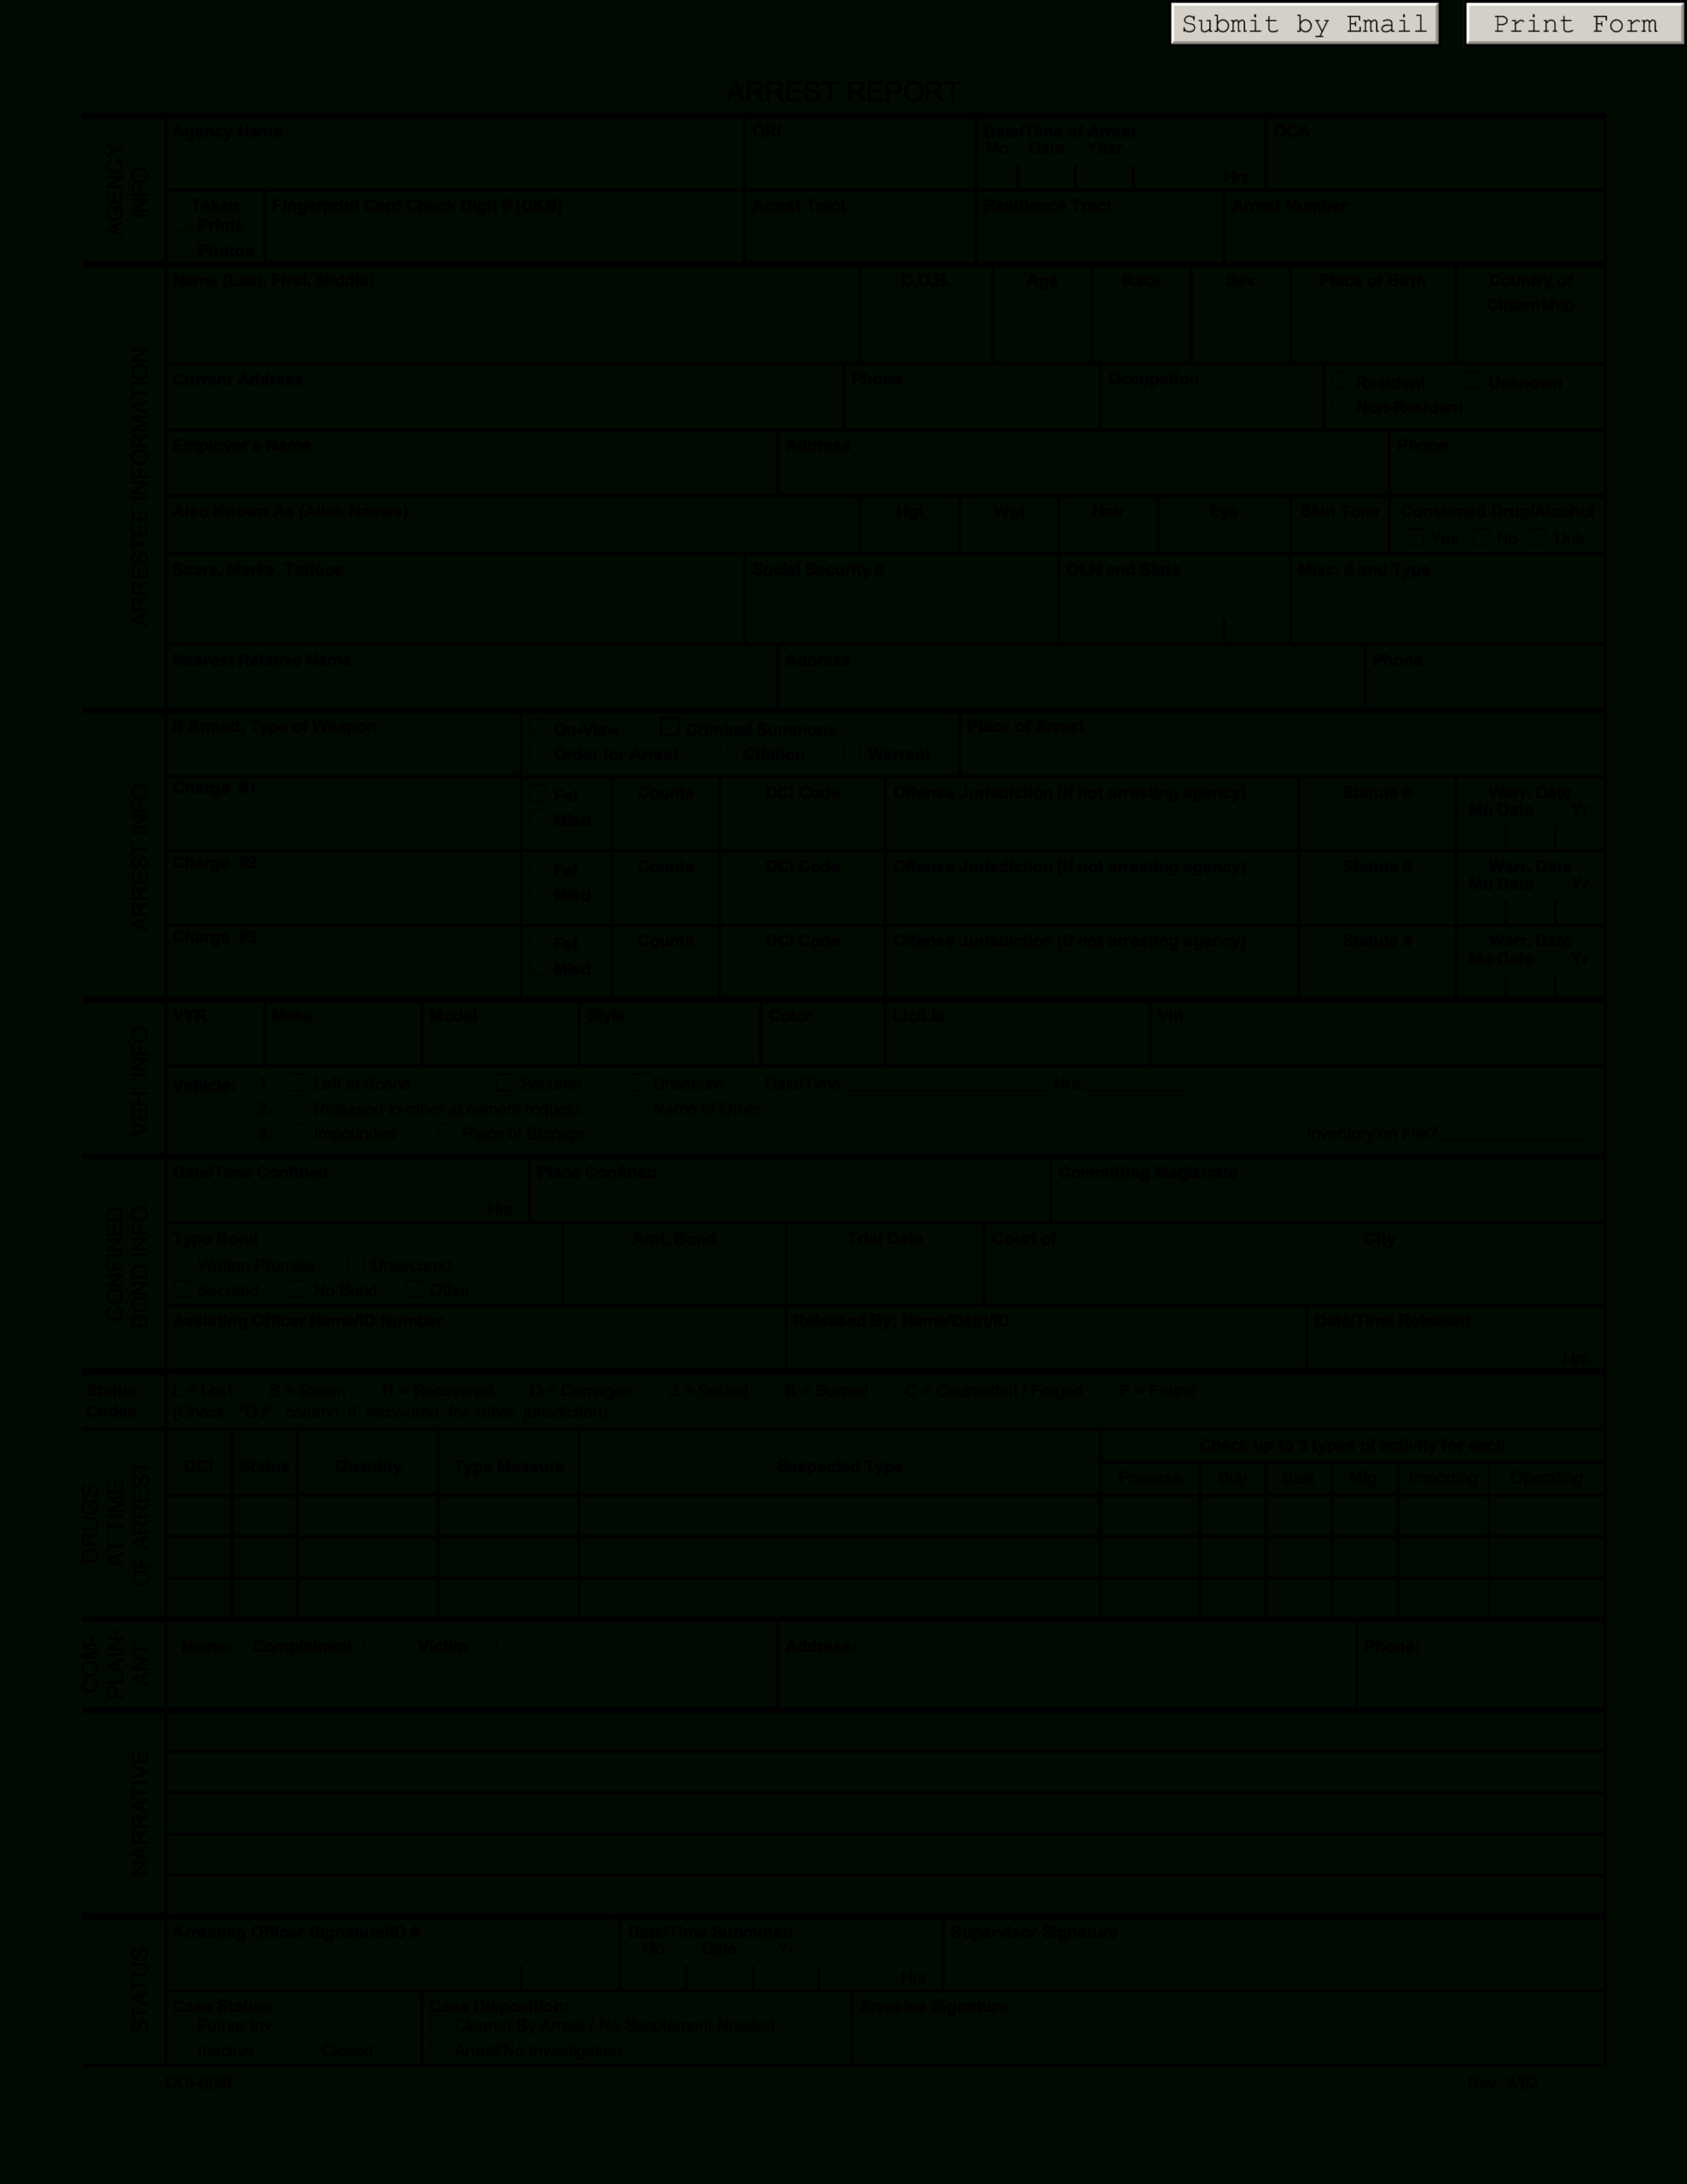 Police Arrest Report   Templates At Allbusinesstemplates Pertaining To Police Report Template Pdf